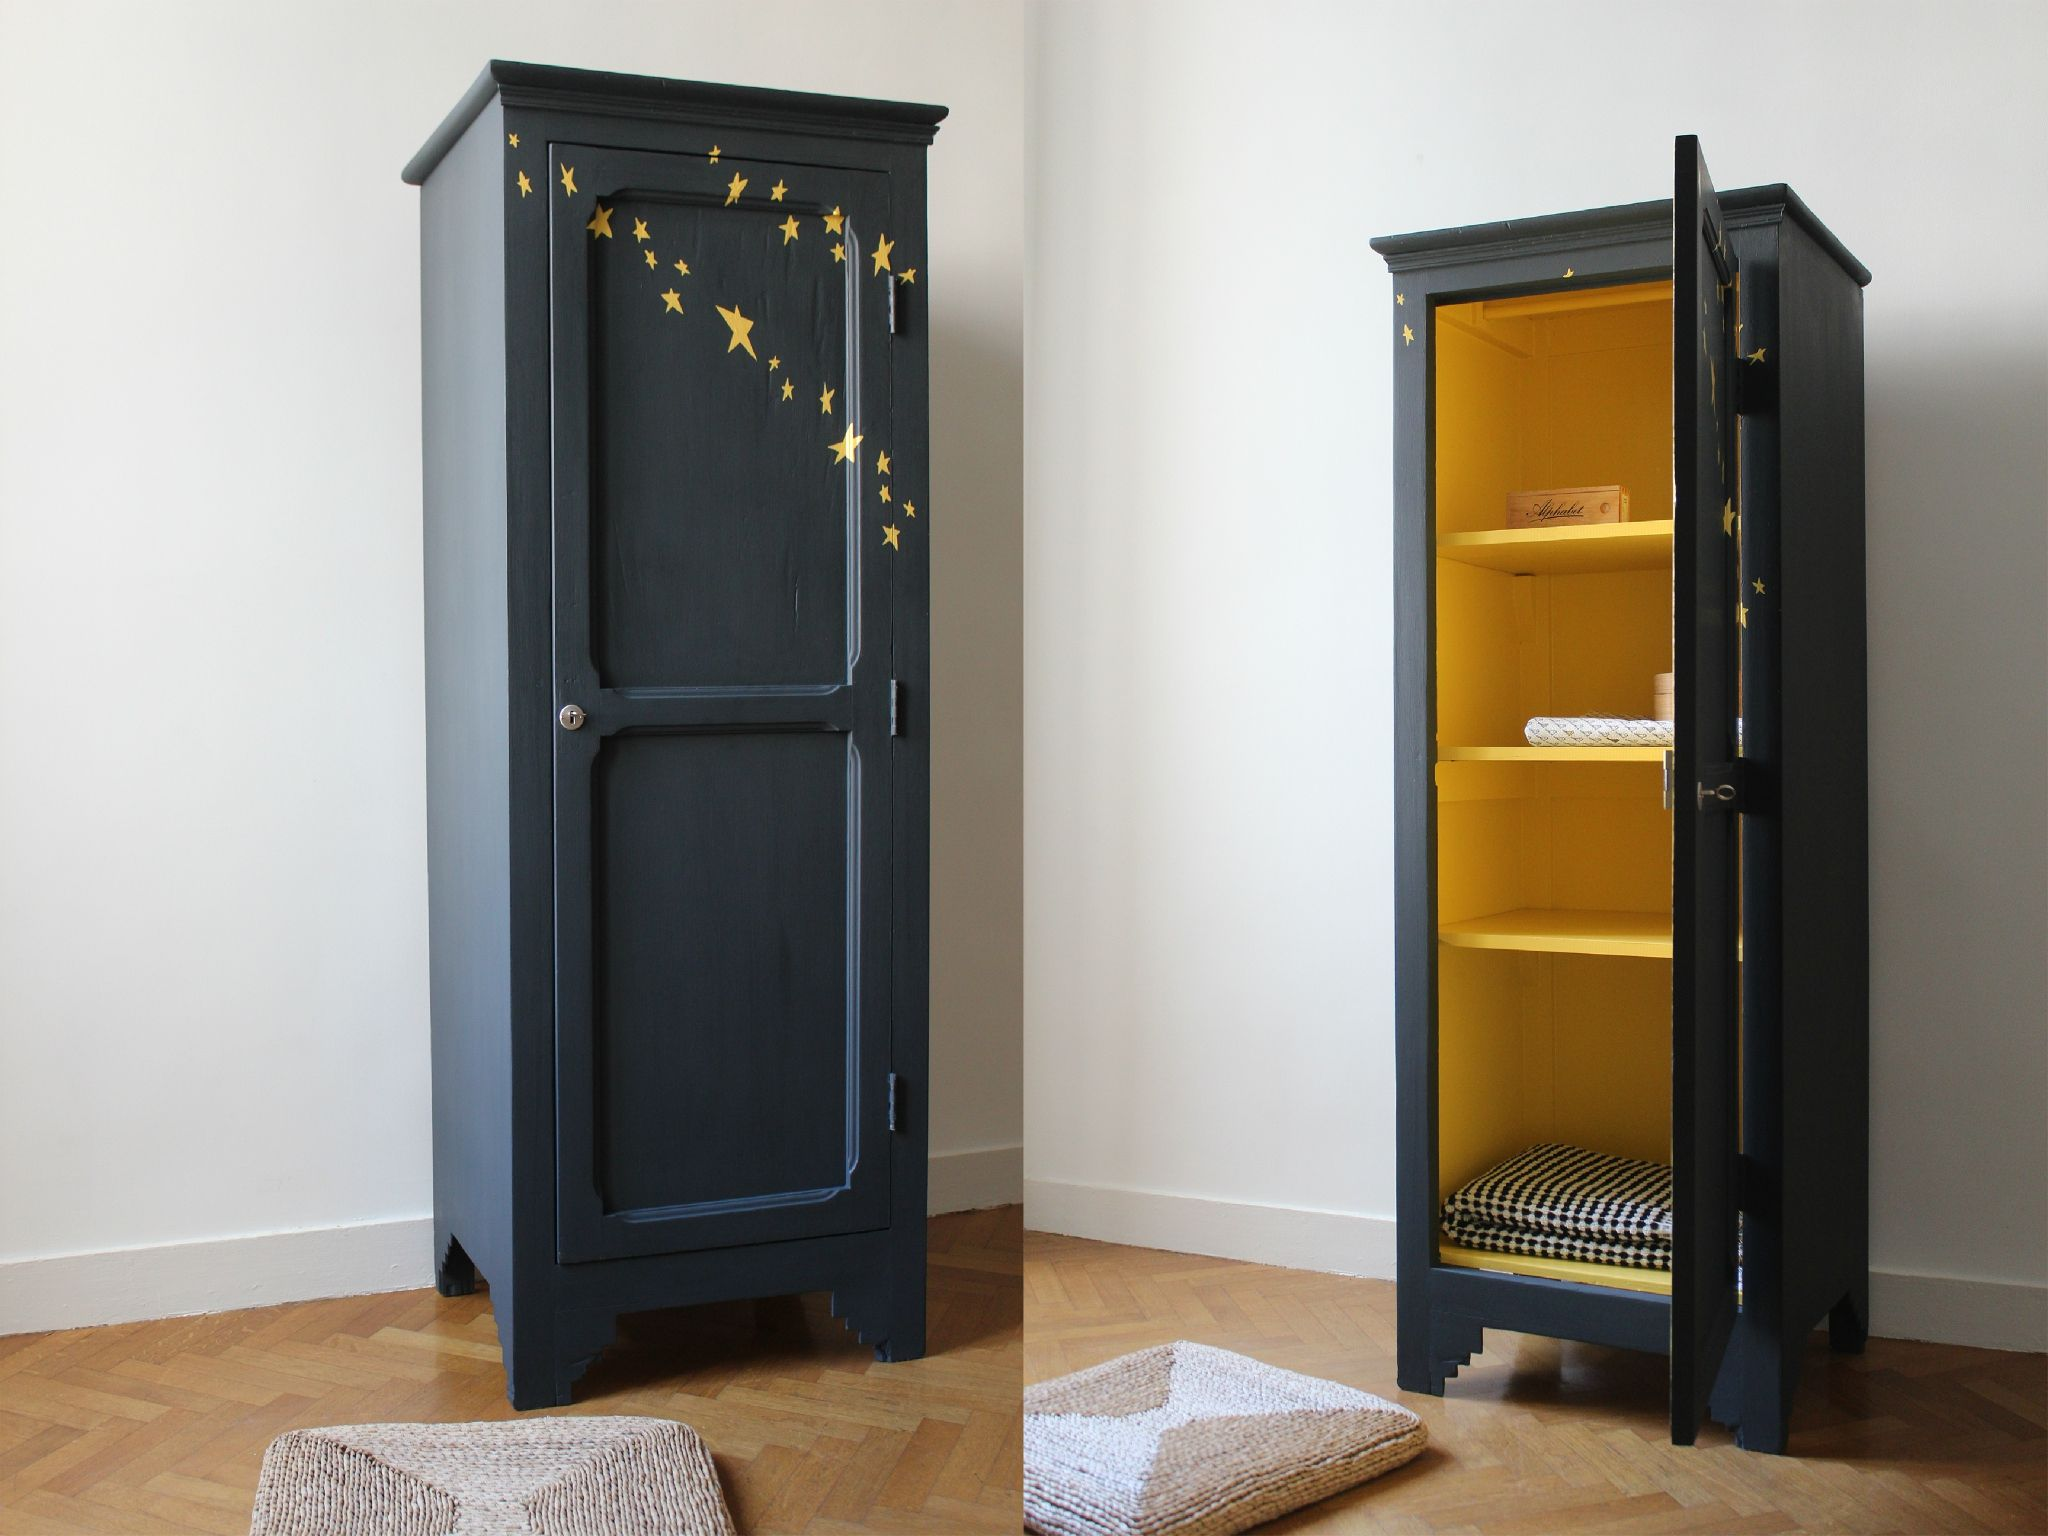 petite armoire penderie vintage trendy little 4 bbbb pinterest armoires bedrooms and house. Black Bedroom Furniture Sets. Home Design Ideas